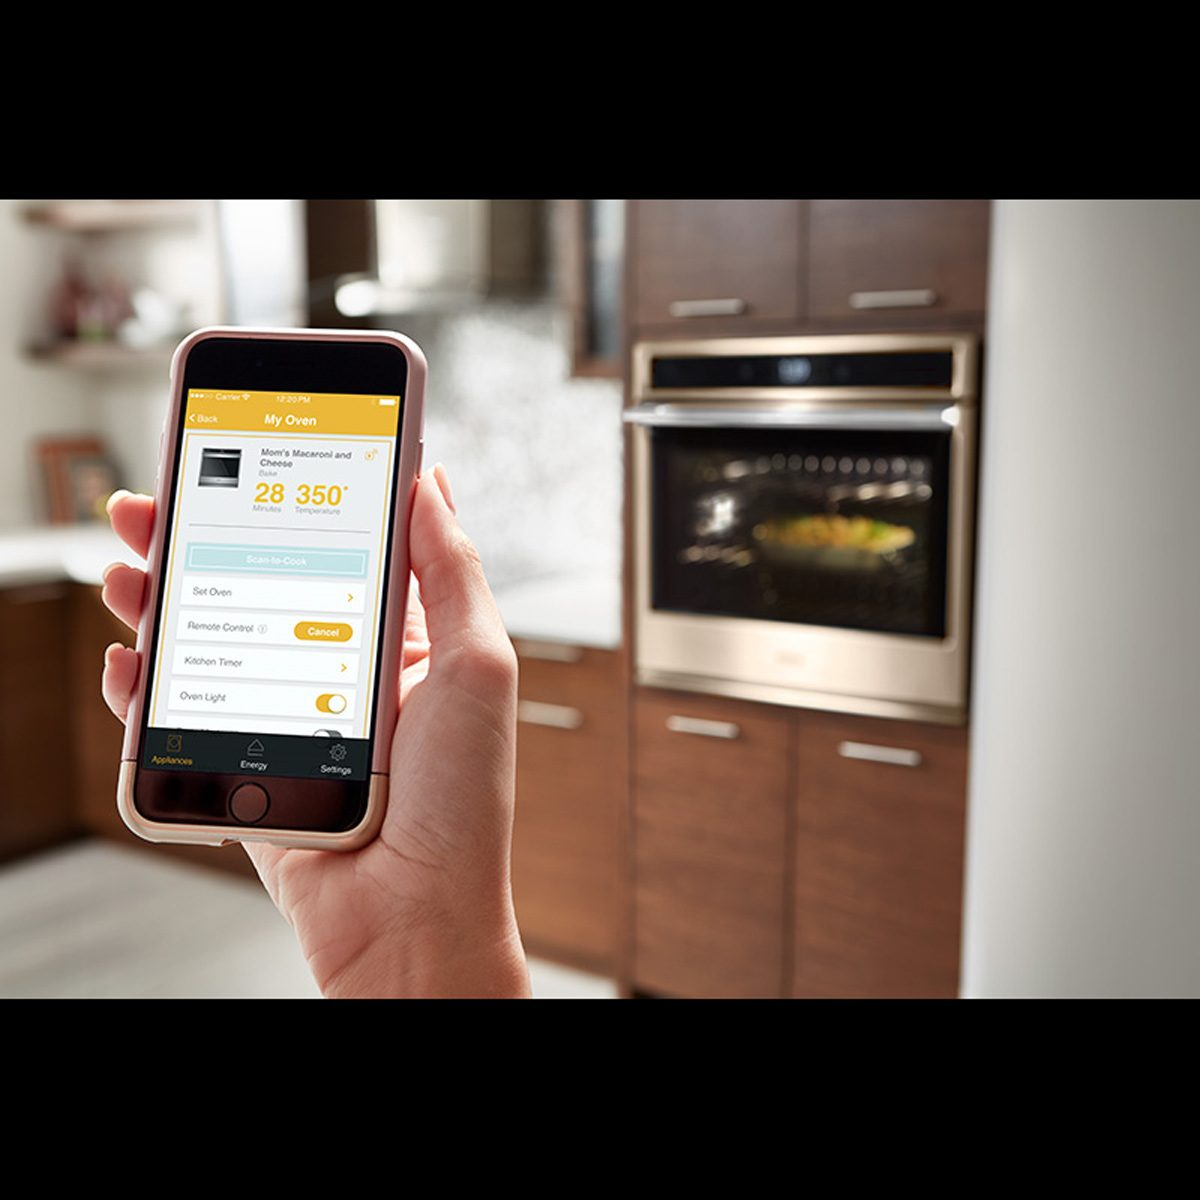 Whirlpool-Connected-Hub-Wall-Oven